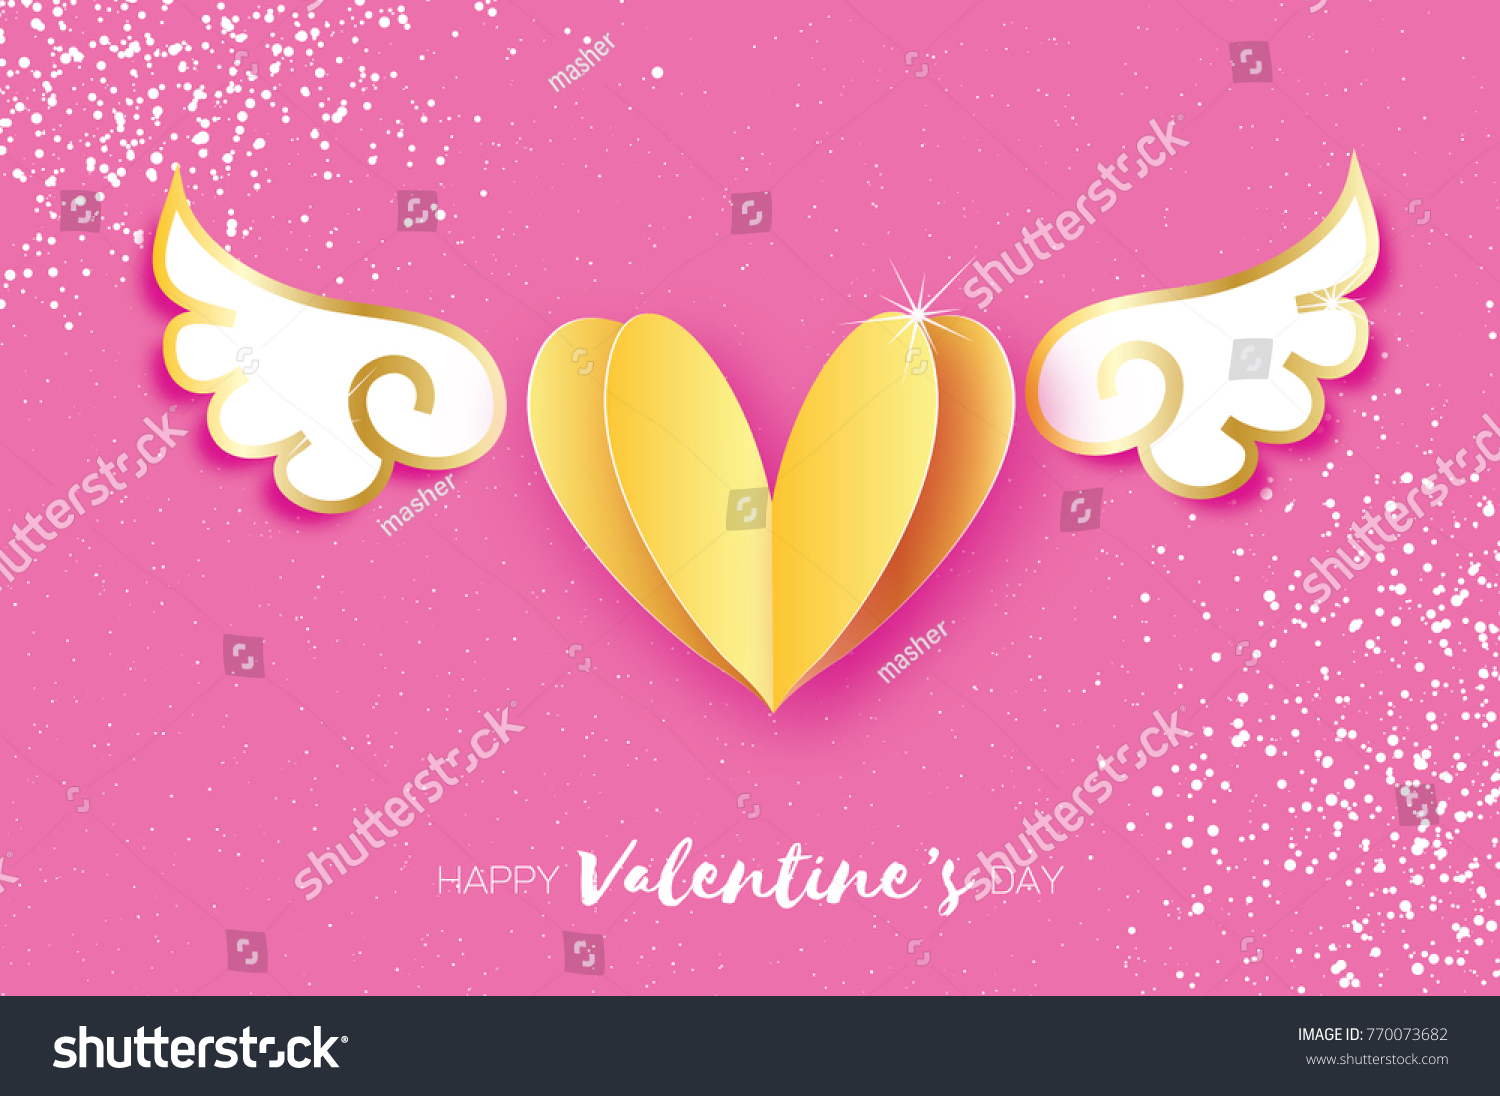 Cute Happy Valentines Day Greetings Card Stock Vector Royalty Free